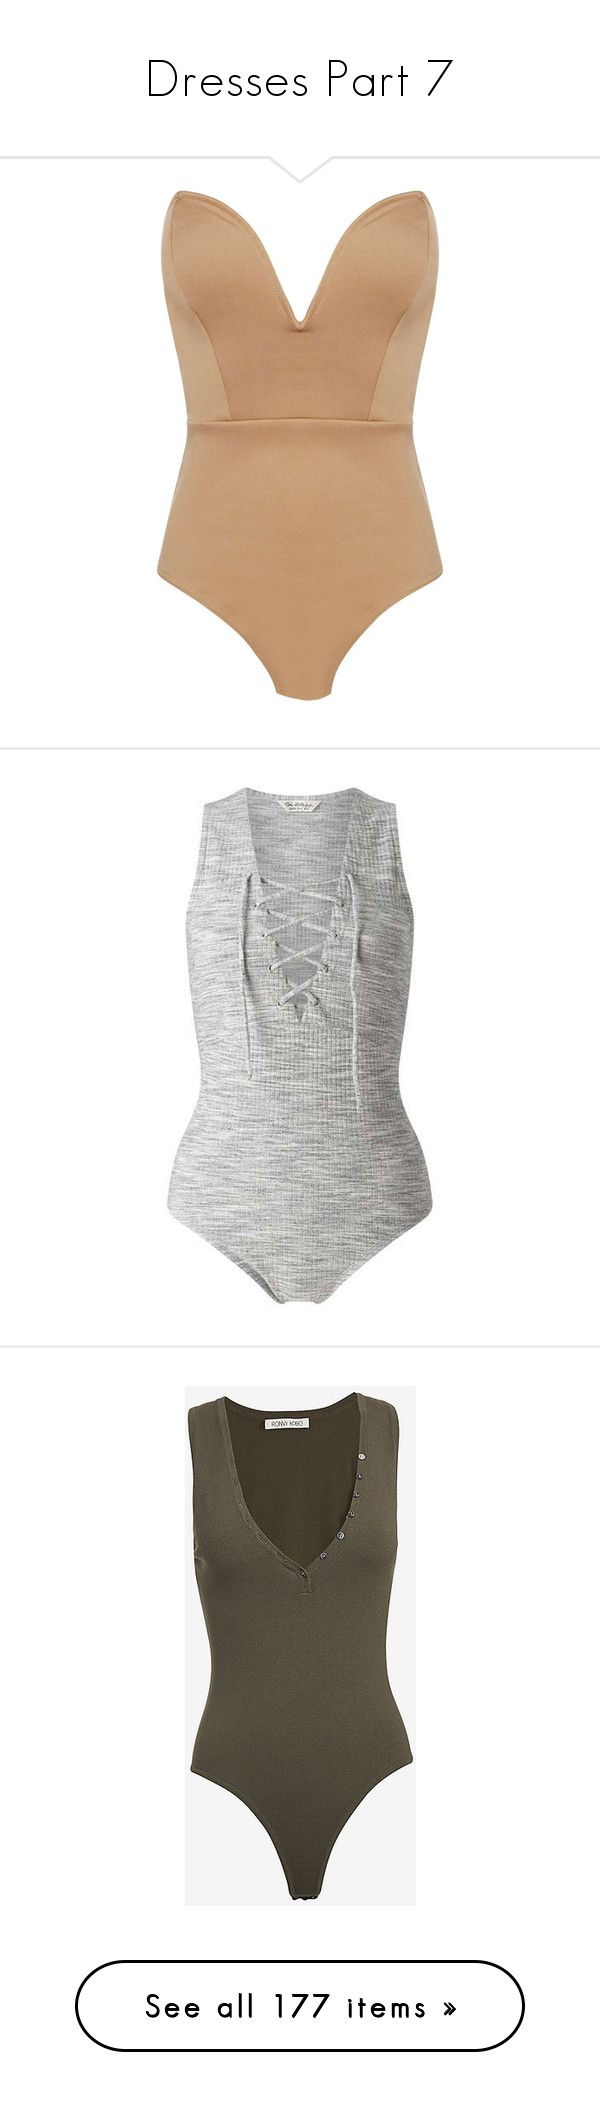 """""""Dresses Part 7"""" by belabmilagres ❤ liked on Polyvore featuring intimates, shapewear, bodysuit, tops, bodies, suits, underwear, bodysuits, shirts and leotards"""